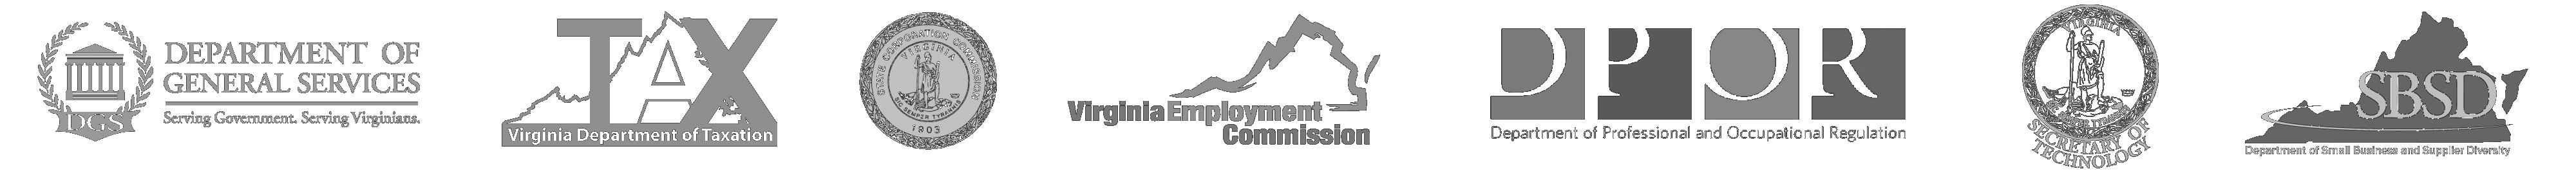 Logos: Department of General Services, VA Tax, State Corporation Commission, Virginia Employment Commission, DMBE, DPOR, Virginia Department of Business Assistance